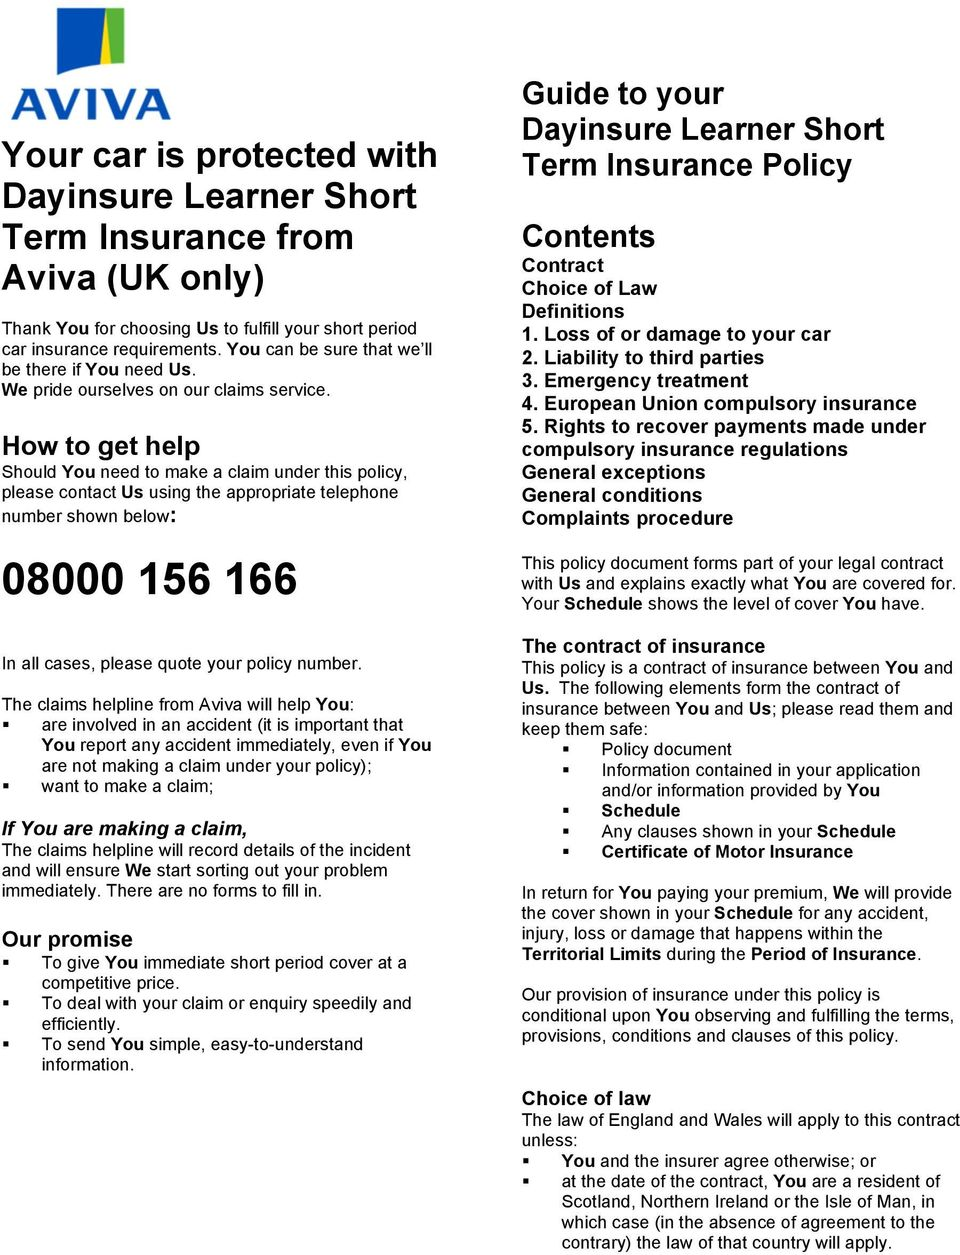 How to get help Should You need to make a claim under this policy, please contact Us using the appropriate telephone number shown below: 08000 156 166 In all cases, please quote your policy number.